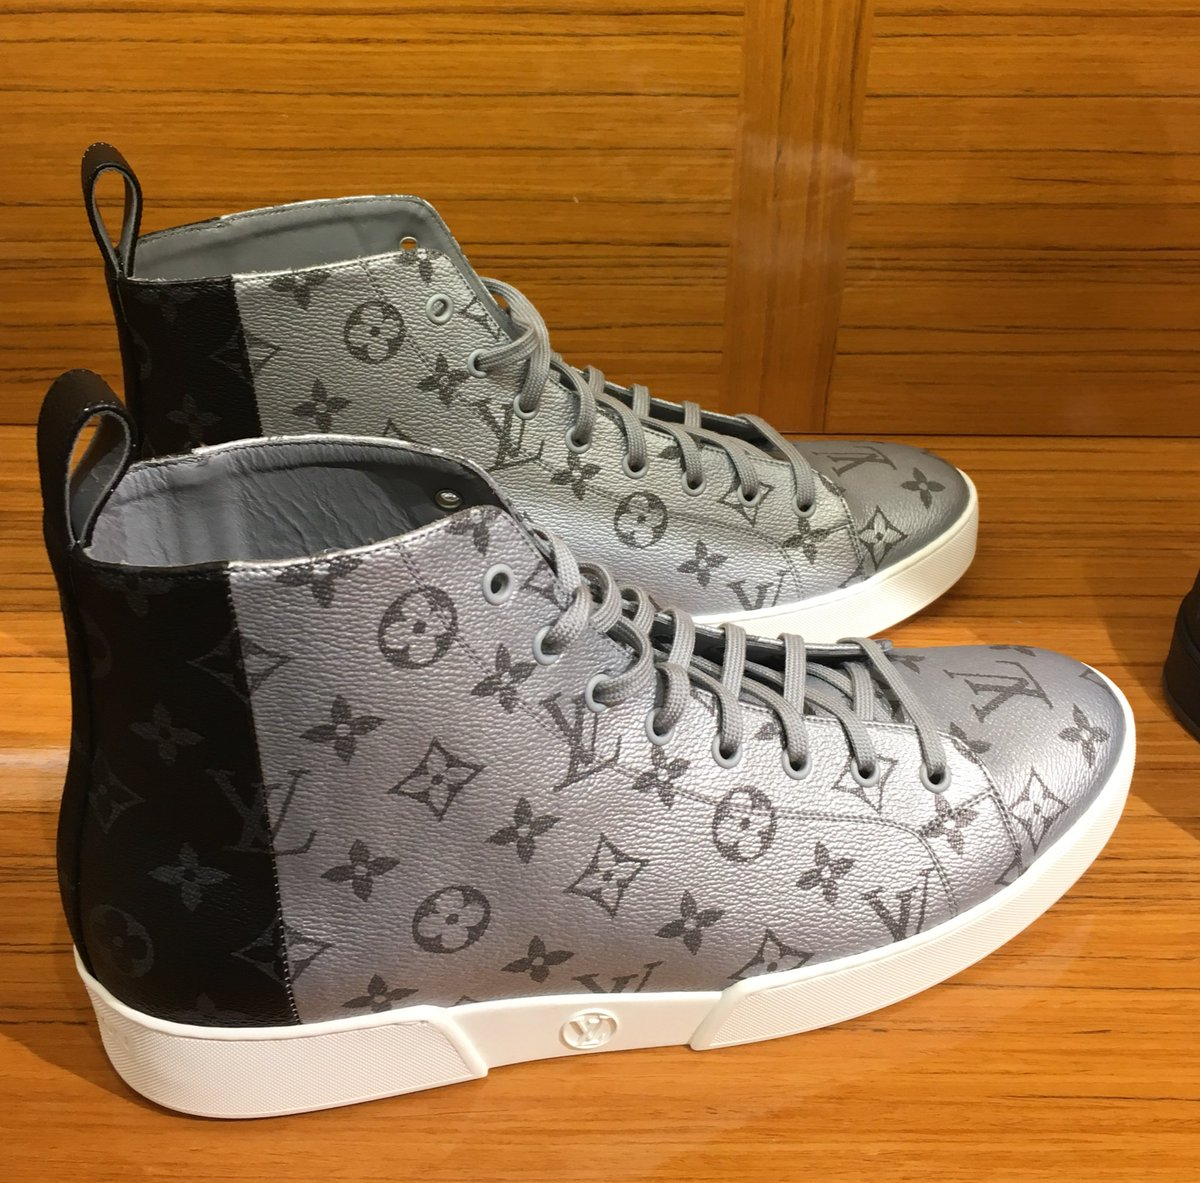 jennatini on twitter quotlouisvuitton high top sneakers for